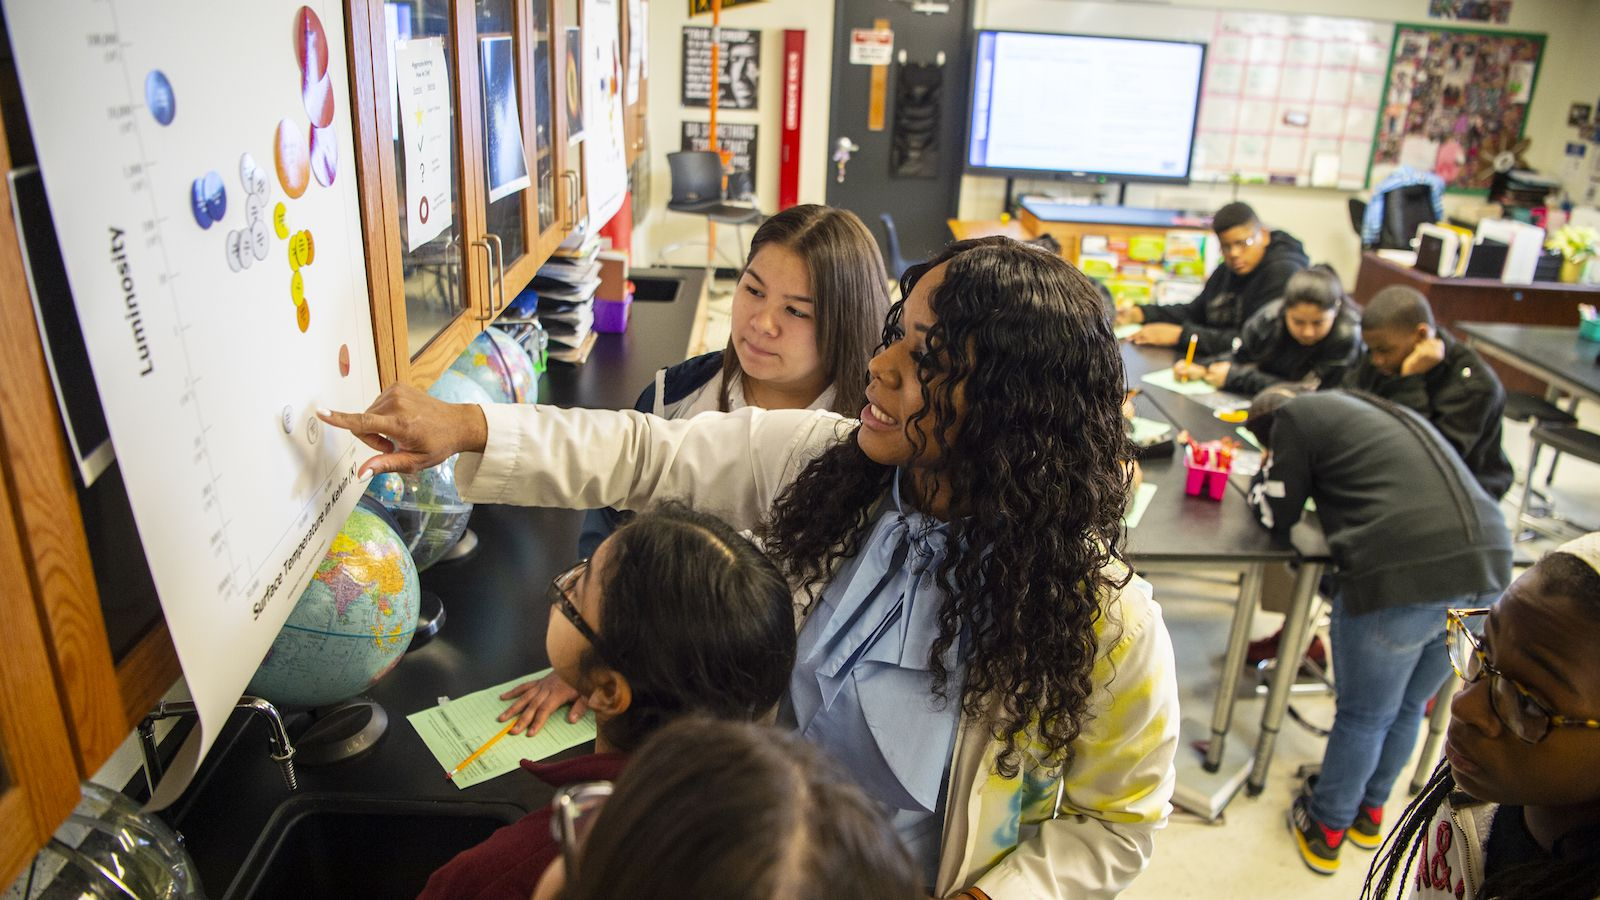 Dallas ISD teacher Elizabeth Blue-Allen teaches science to Pinkston High School students in early 2020. The school district, SMU, Toyota and the West Dallas community are partnering to establish a pre-K through eighth grade model school focused on a STEM curriculum.